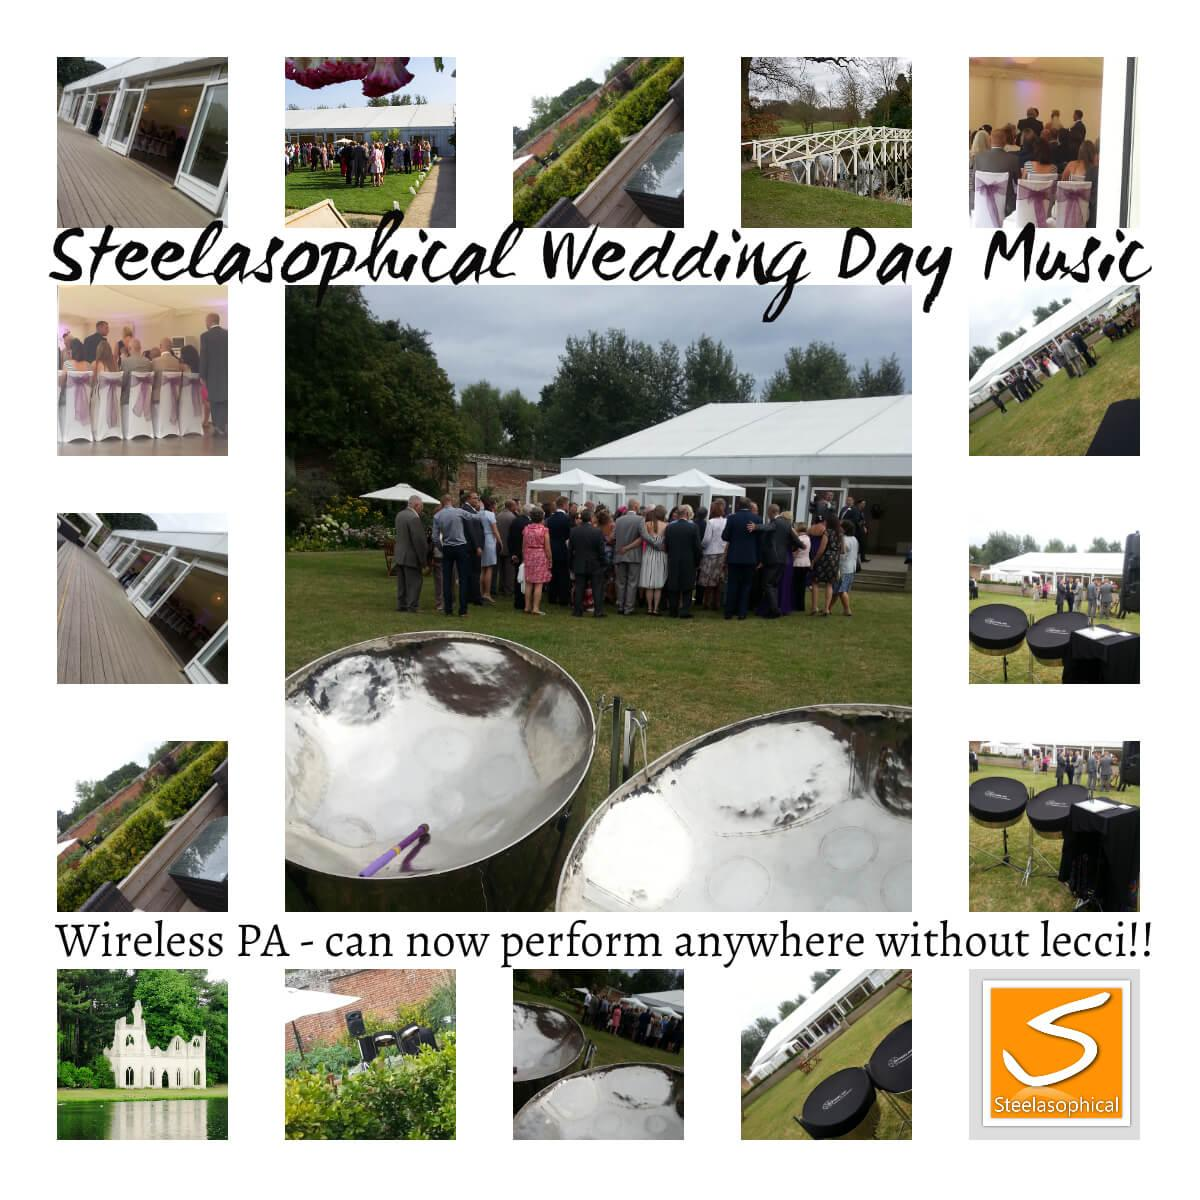 Steelasophical steelband steelpan wedding day music ceremony drinks reception wedding breakfast evening dancing